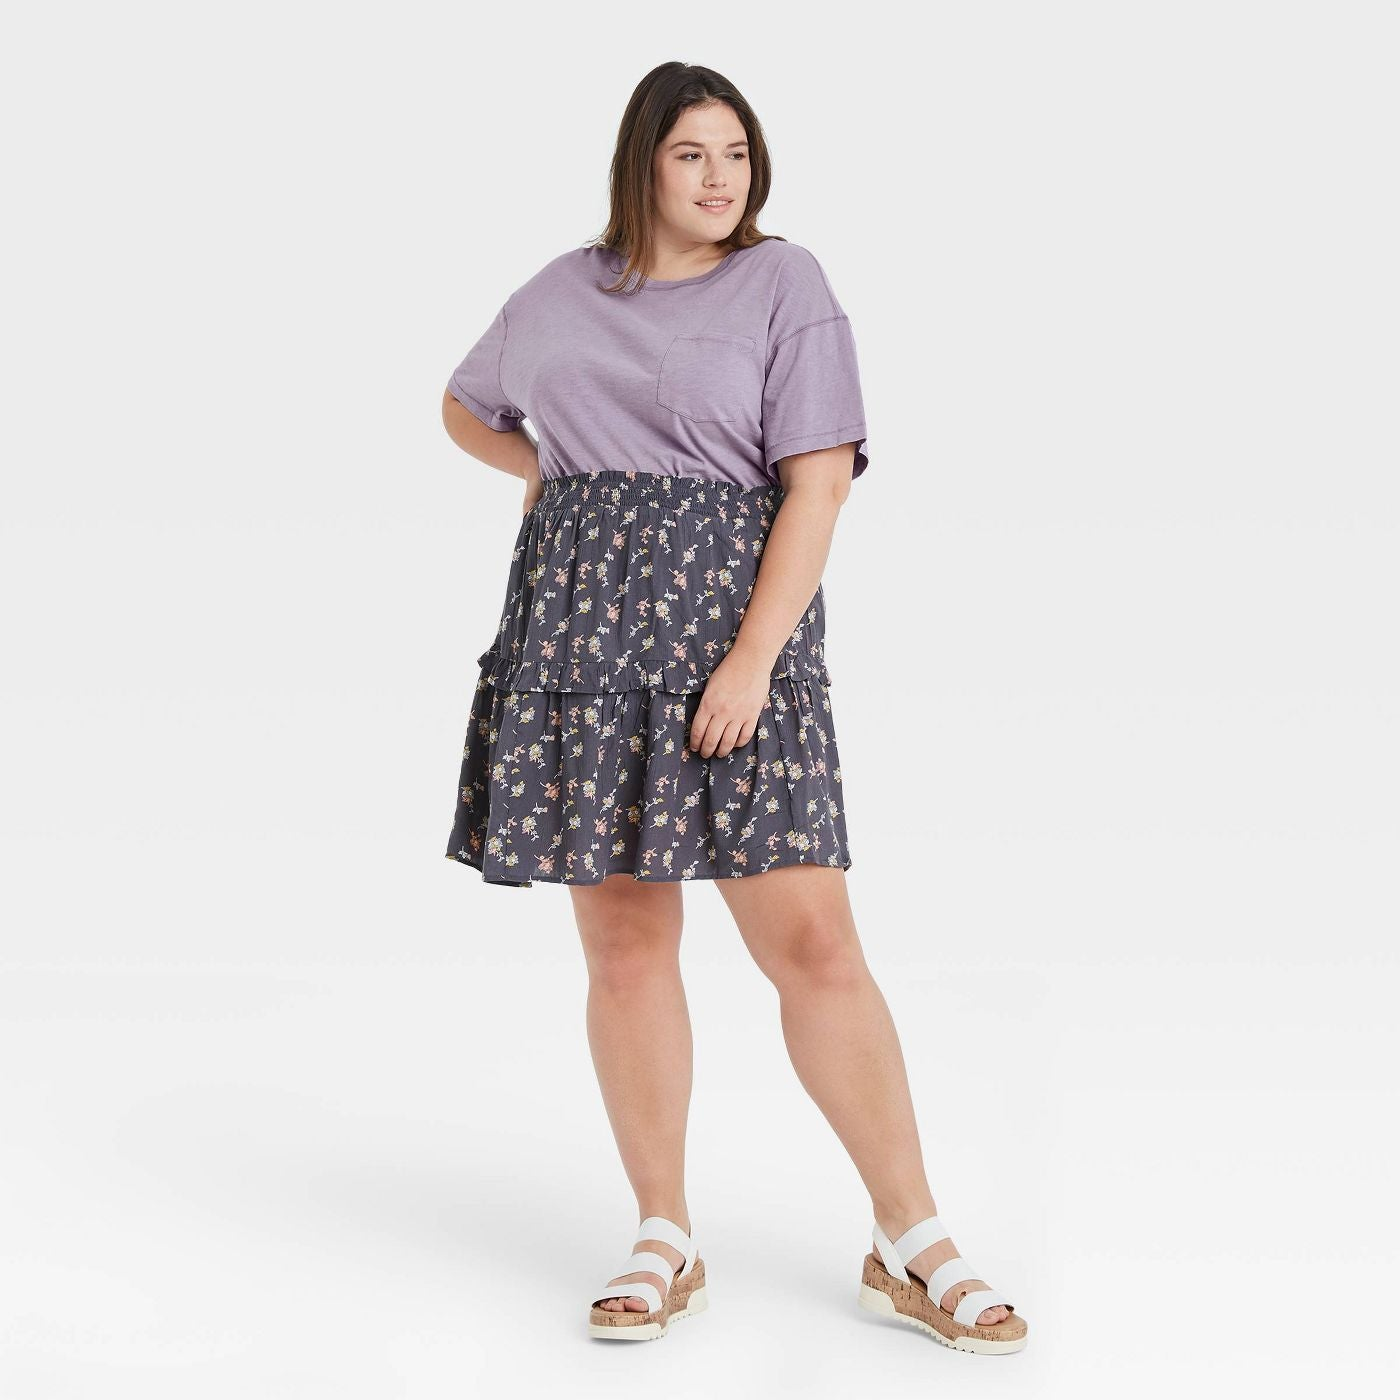 Model wearing the tired floral skirt in dark grey